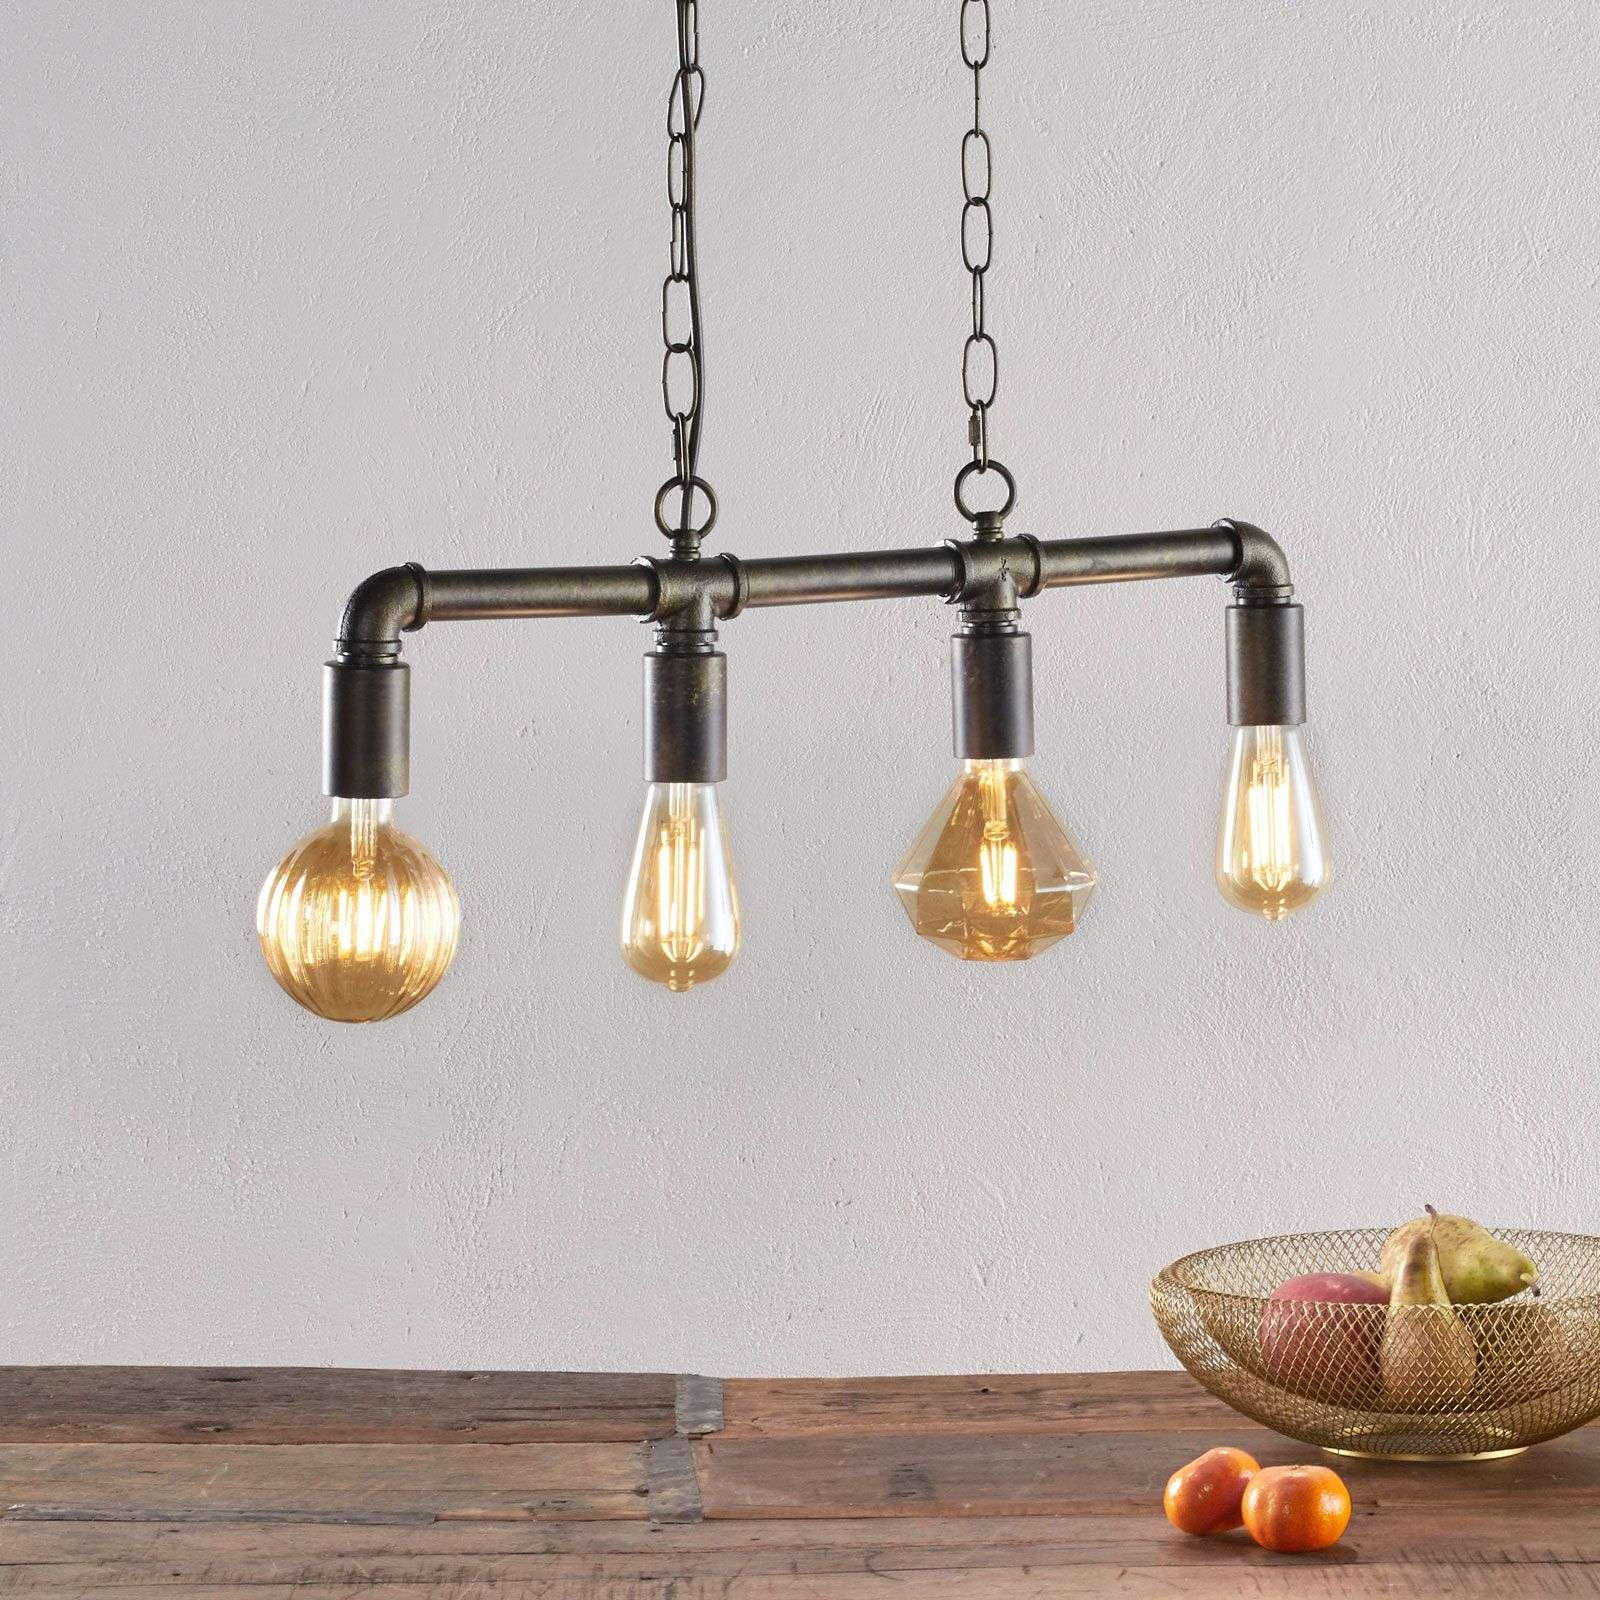 Suspension LED Leonas, style industriel